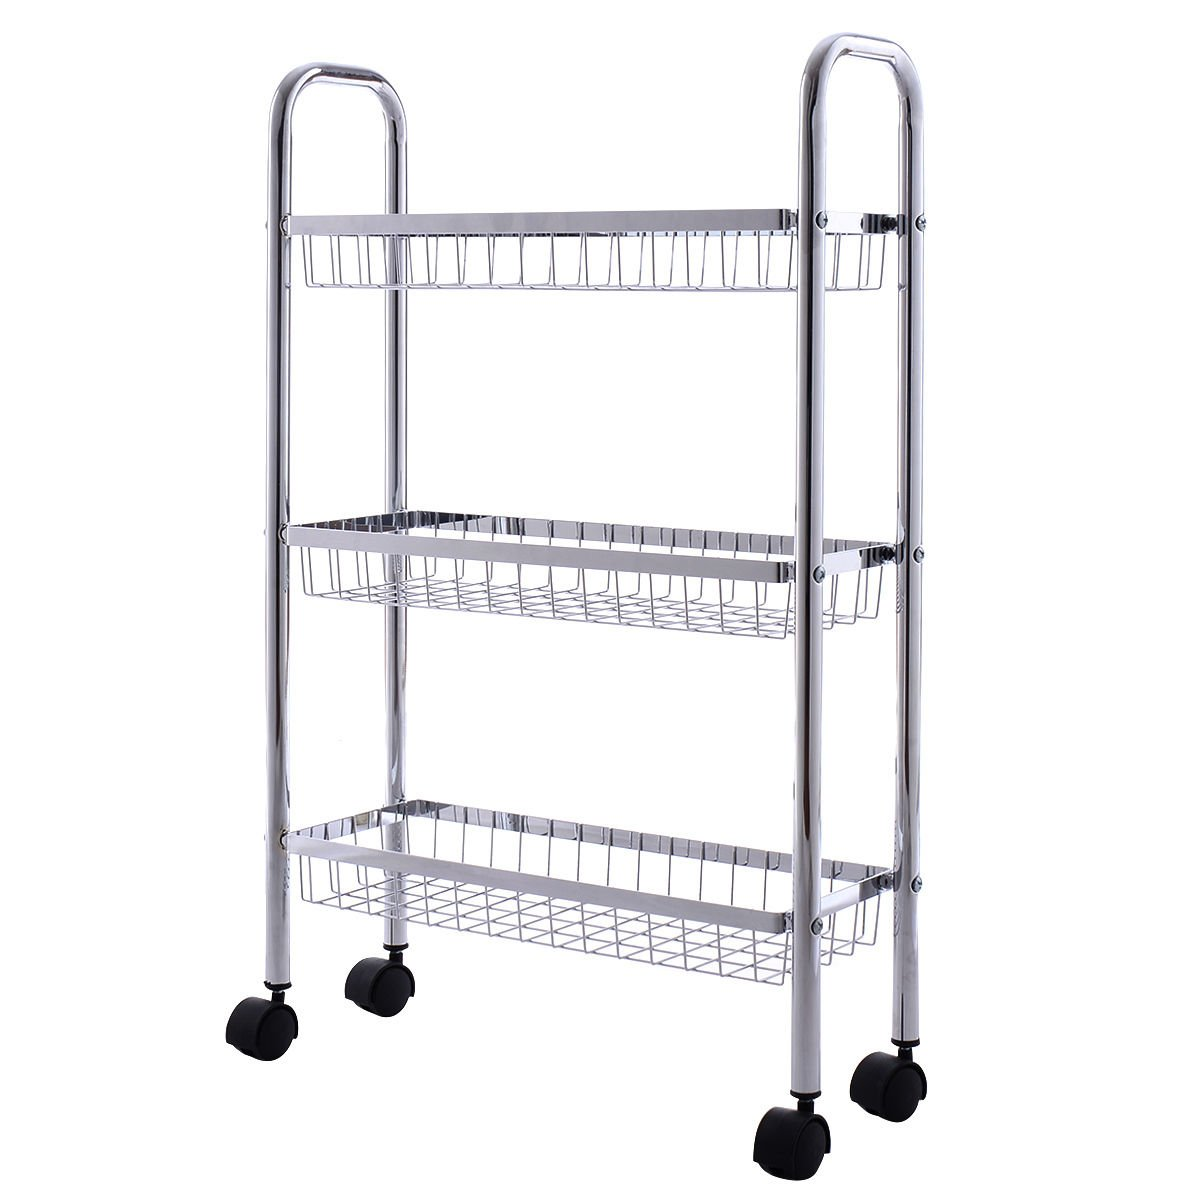 Global House Products GHP 18.7''x6.5''x30.1'' Silver Chrome Steel Basket 3-Tiered Storage Rack Organizer by Global House Products